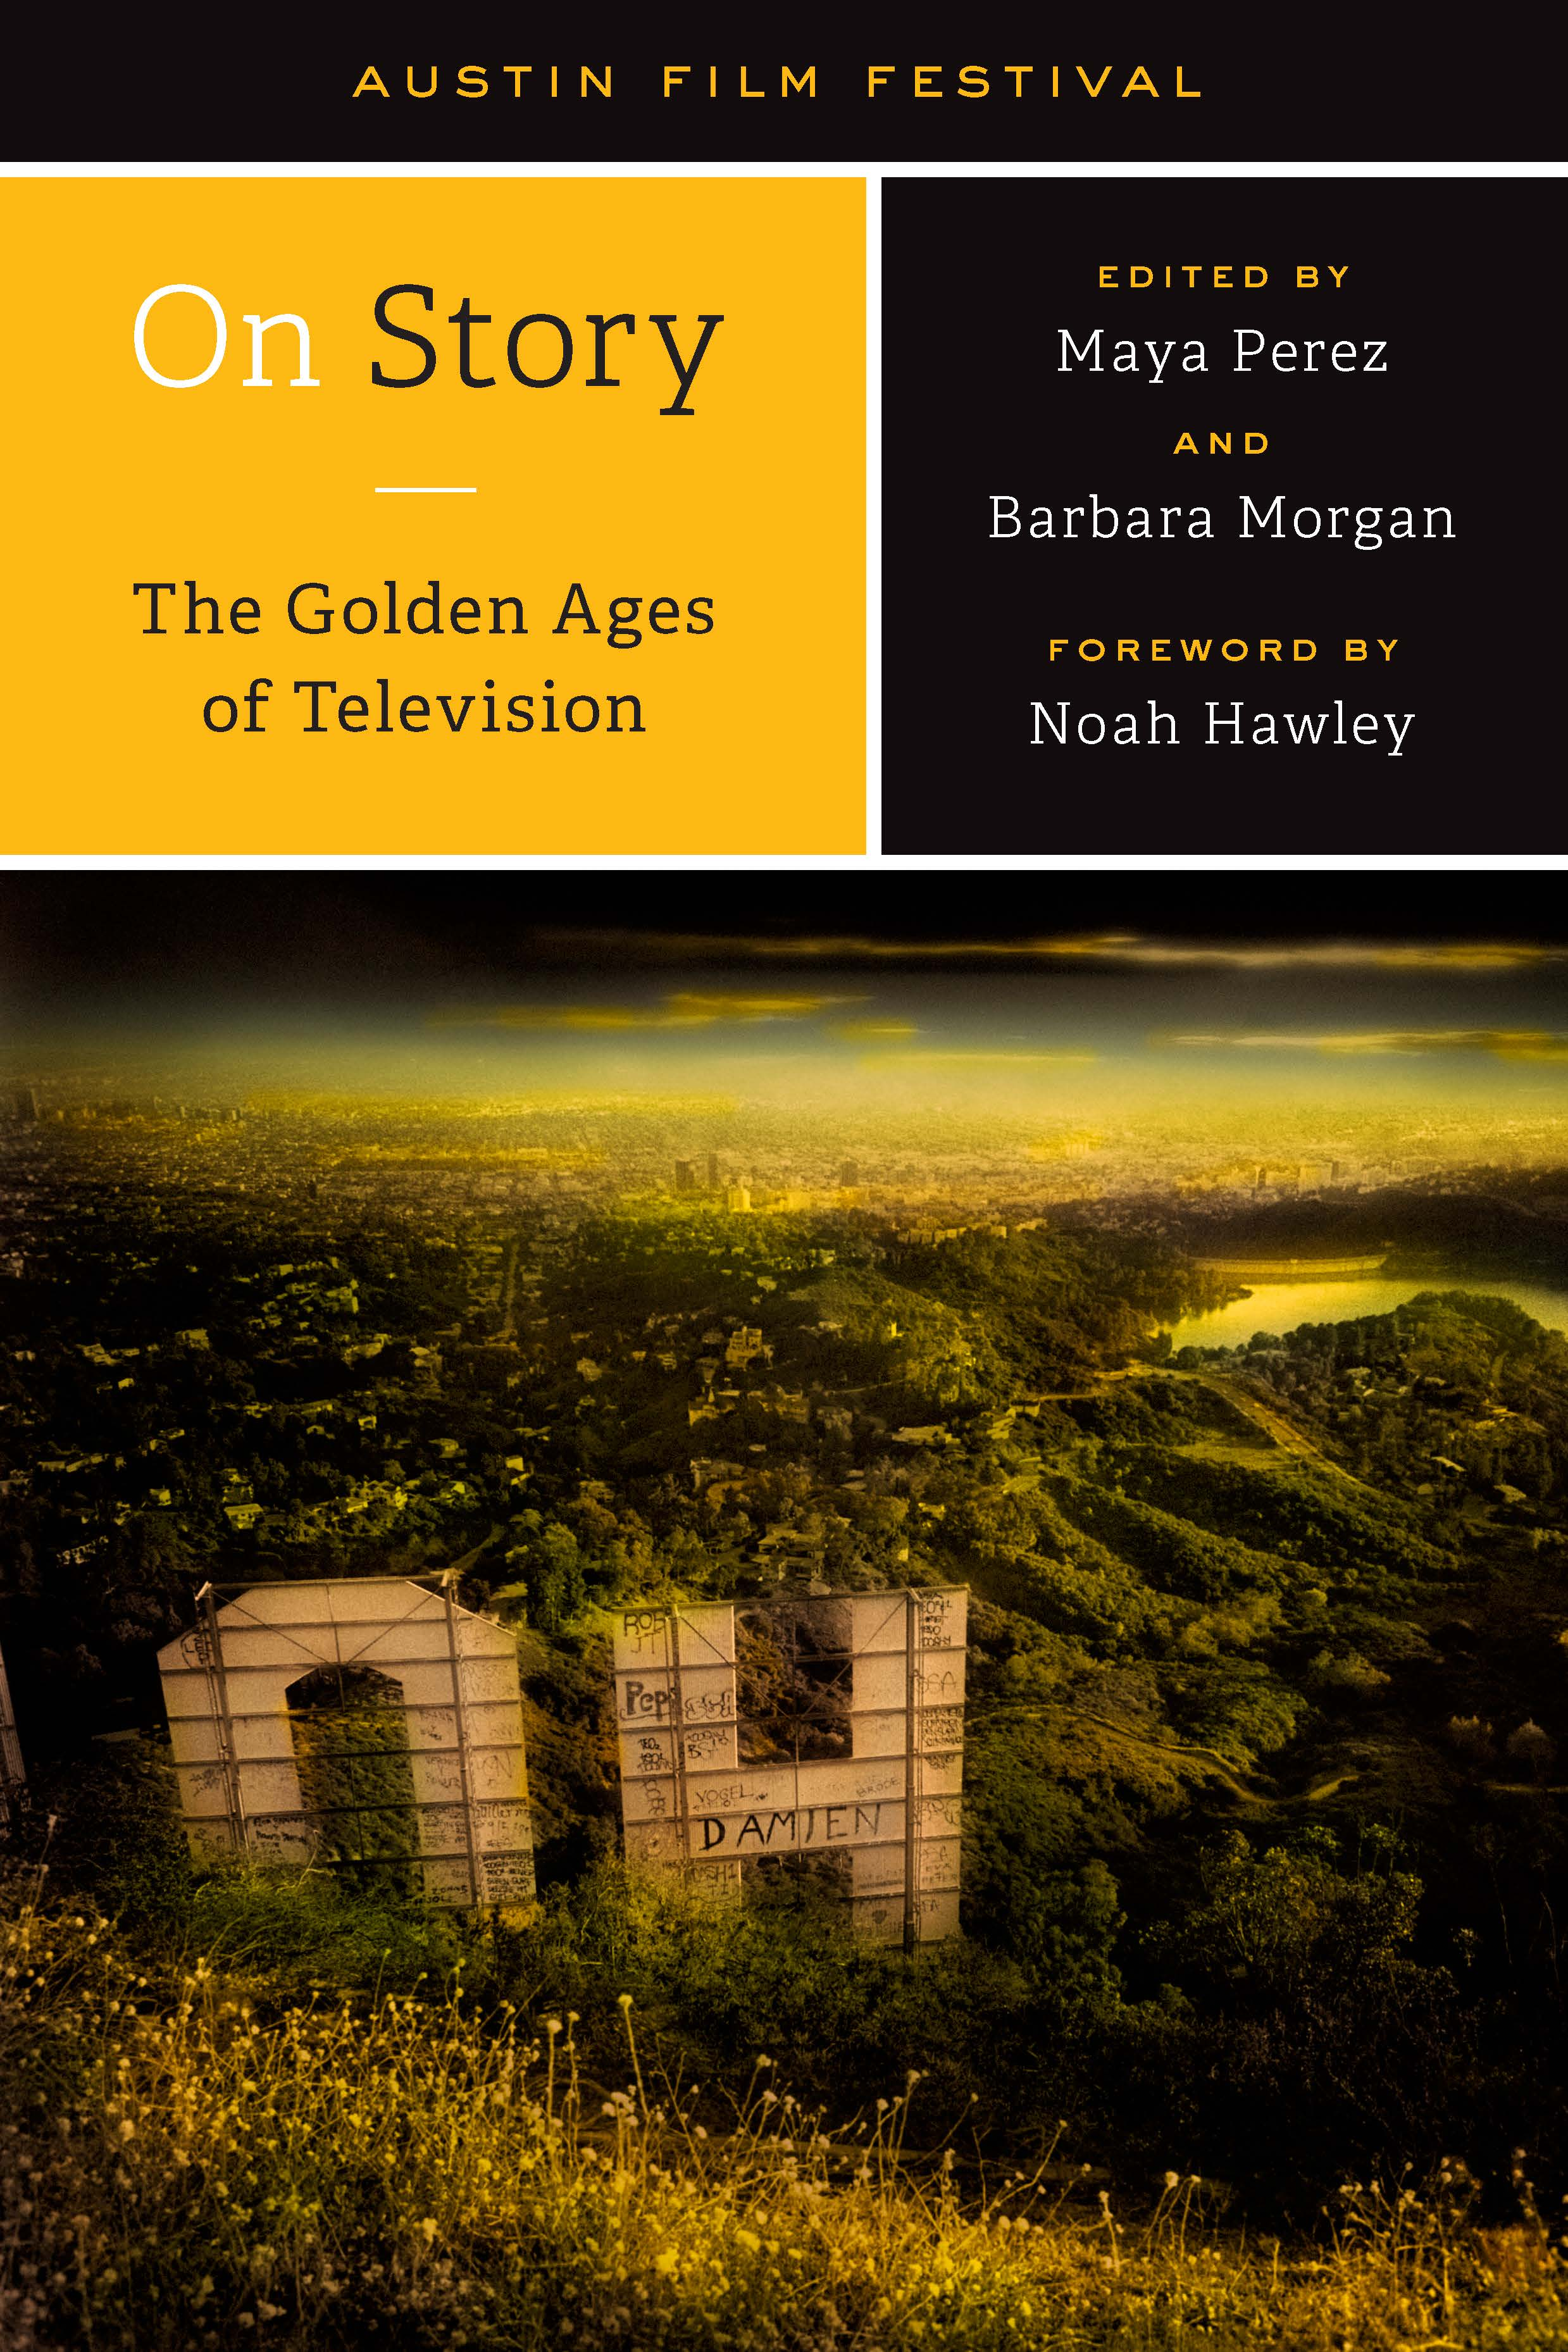 On Story—The Golden Ages of Television  explores the transformation of television's narrative content over the past several decades through interviews with some of TV's best creators and writers, including Garry Shandling ( The Larry Sanders Show ), Carl Reiner ( The Dick Van Dyke Show ), Issa Rae ( Insecure ), Vince Gilligan ( Breaking Bad ), Greg Daniels ( The Office ), Paula Pell ( Saturday Night Live ), Noah Hawley ( Fargo ), Liz Meriwether ( New Girl ), David Chase ( The Sopranos ), Alan Yang ( Master of None ), Marta Kauffman ( Friends ), Jenji Kohan ( Orange Is the New Black ), and many more. Their insights, behind-the-scenes looks at the creative process, production tales, responses to audiences' reactions, and observations on how both TV narratives and the industry have changed make this book ideal for TV lovers, pop culture fans, screenwriting courses, and filmmakers and writers seeking information and inspiration.